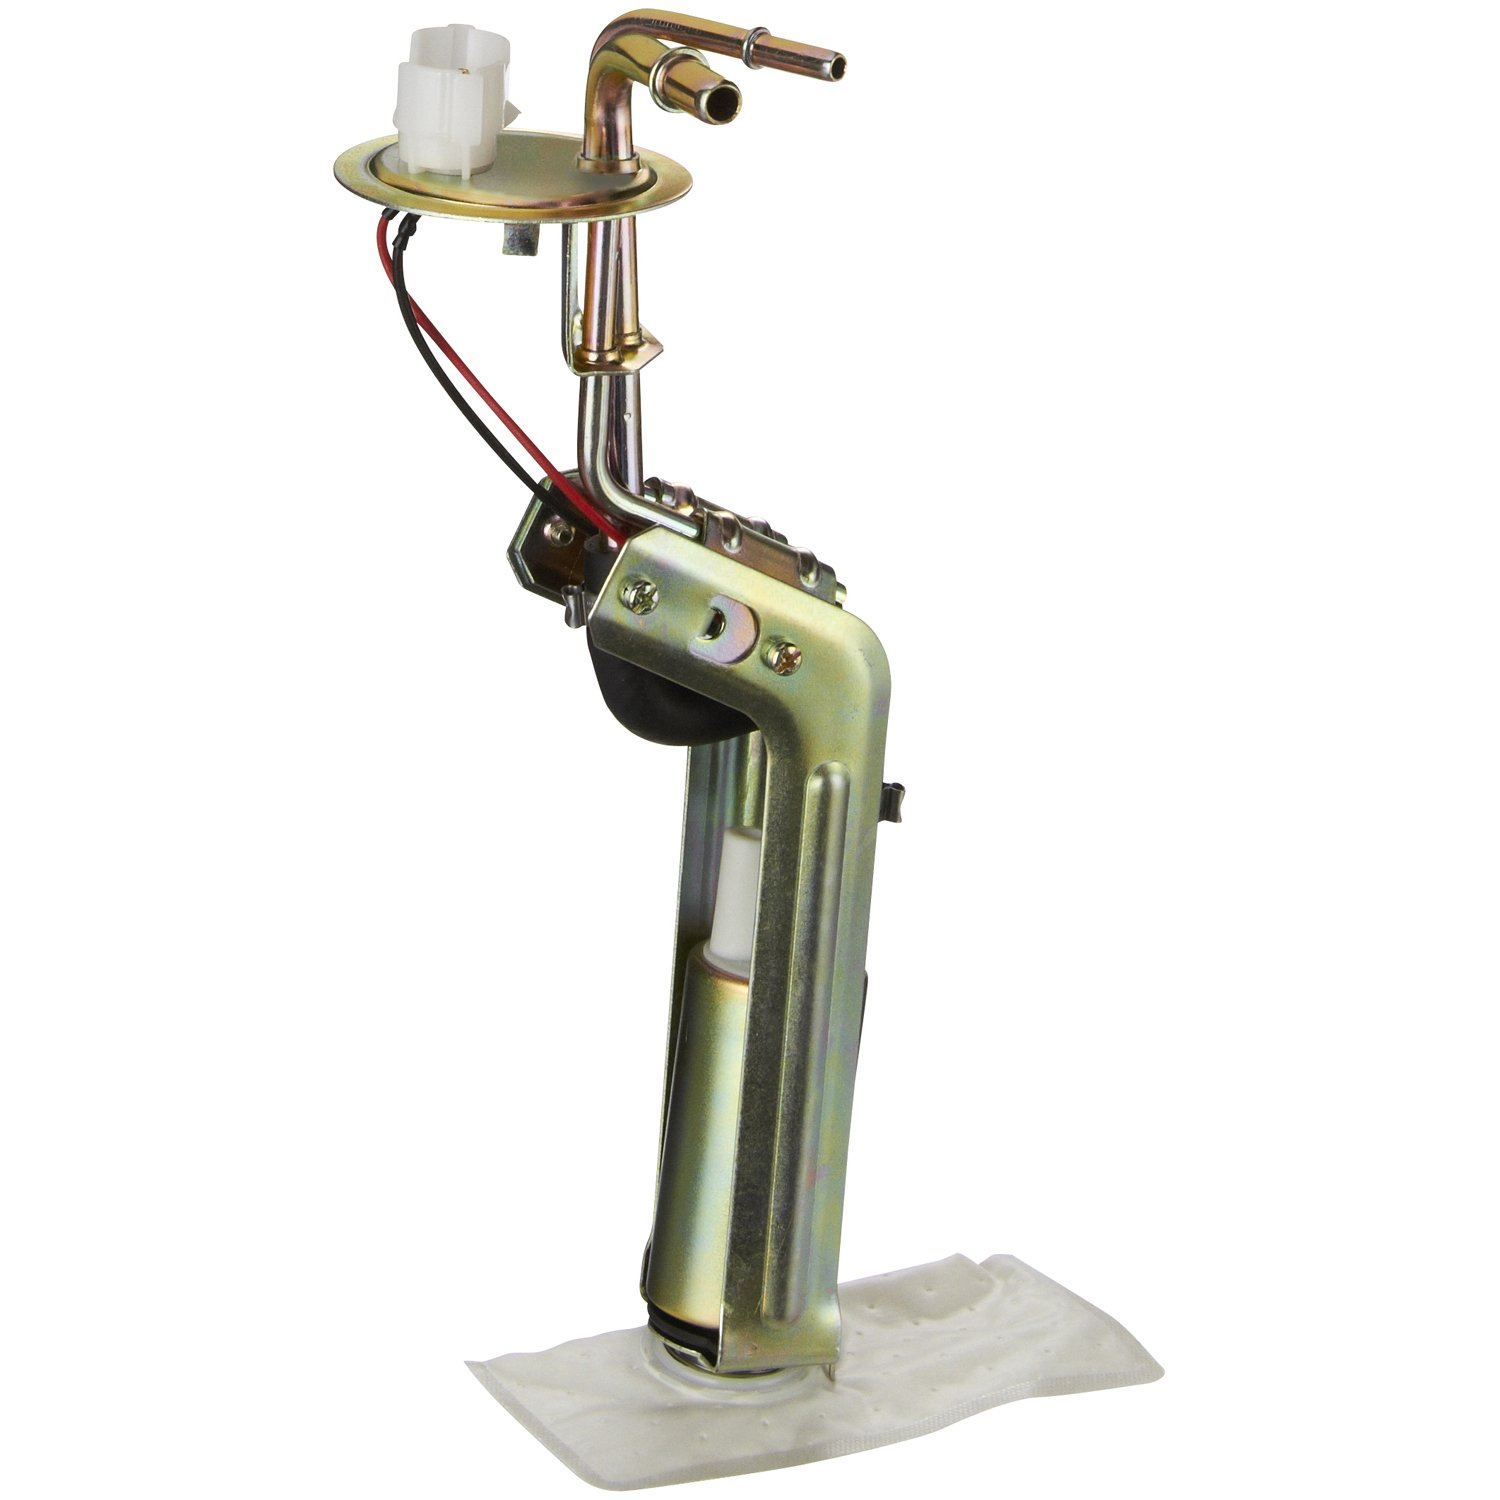 Spectra Premium Sp237h Fuel Hanger Assembly With Pump 98 Mustang Filter Removal And Sending Unit For Ford Automotive